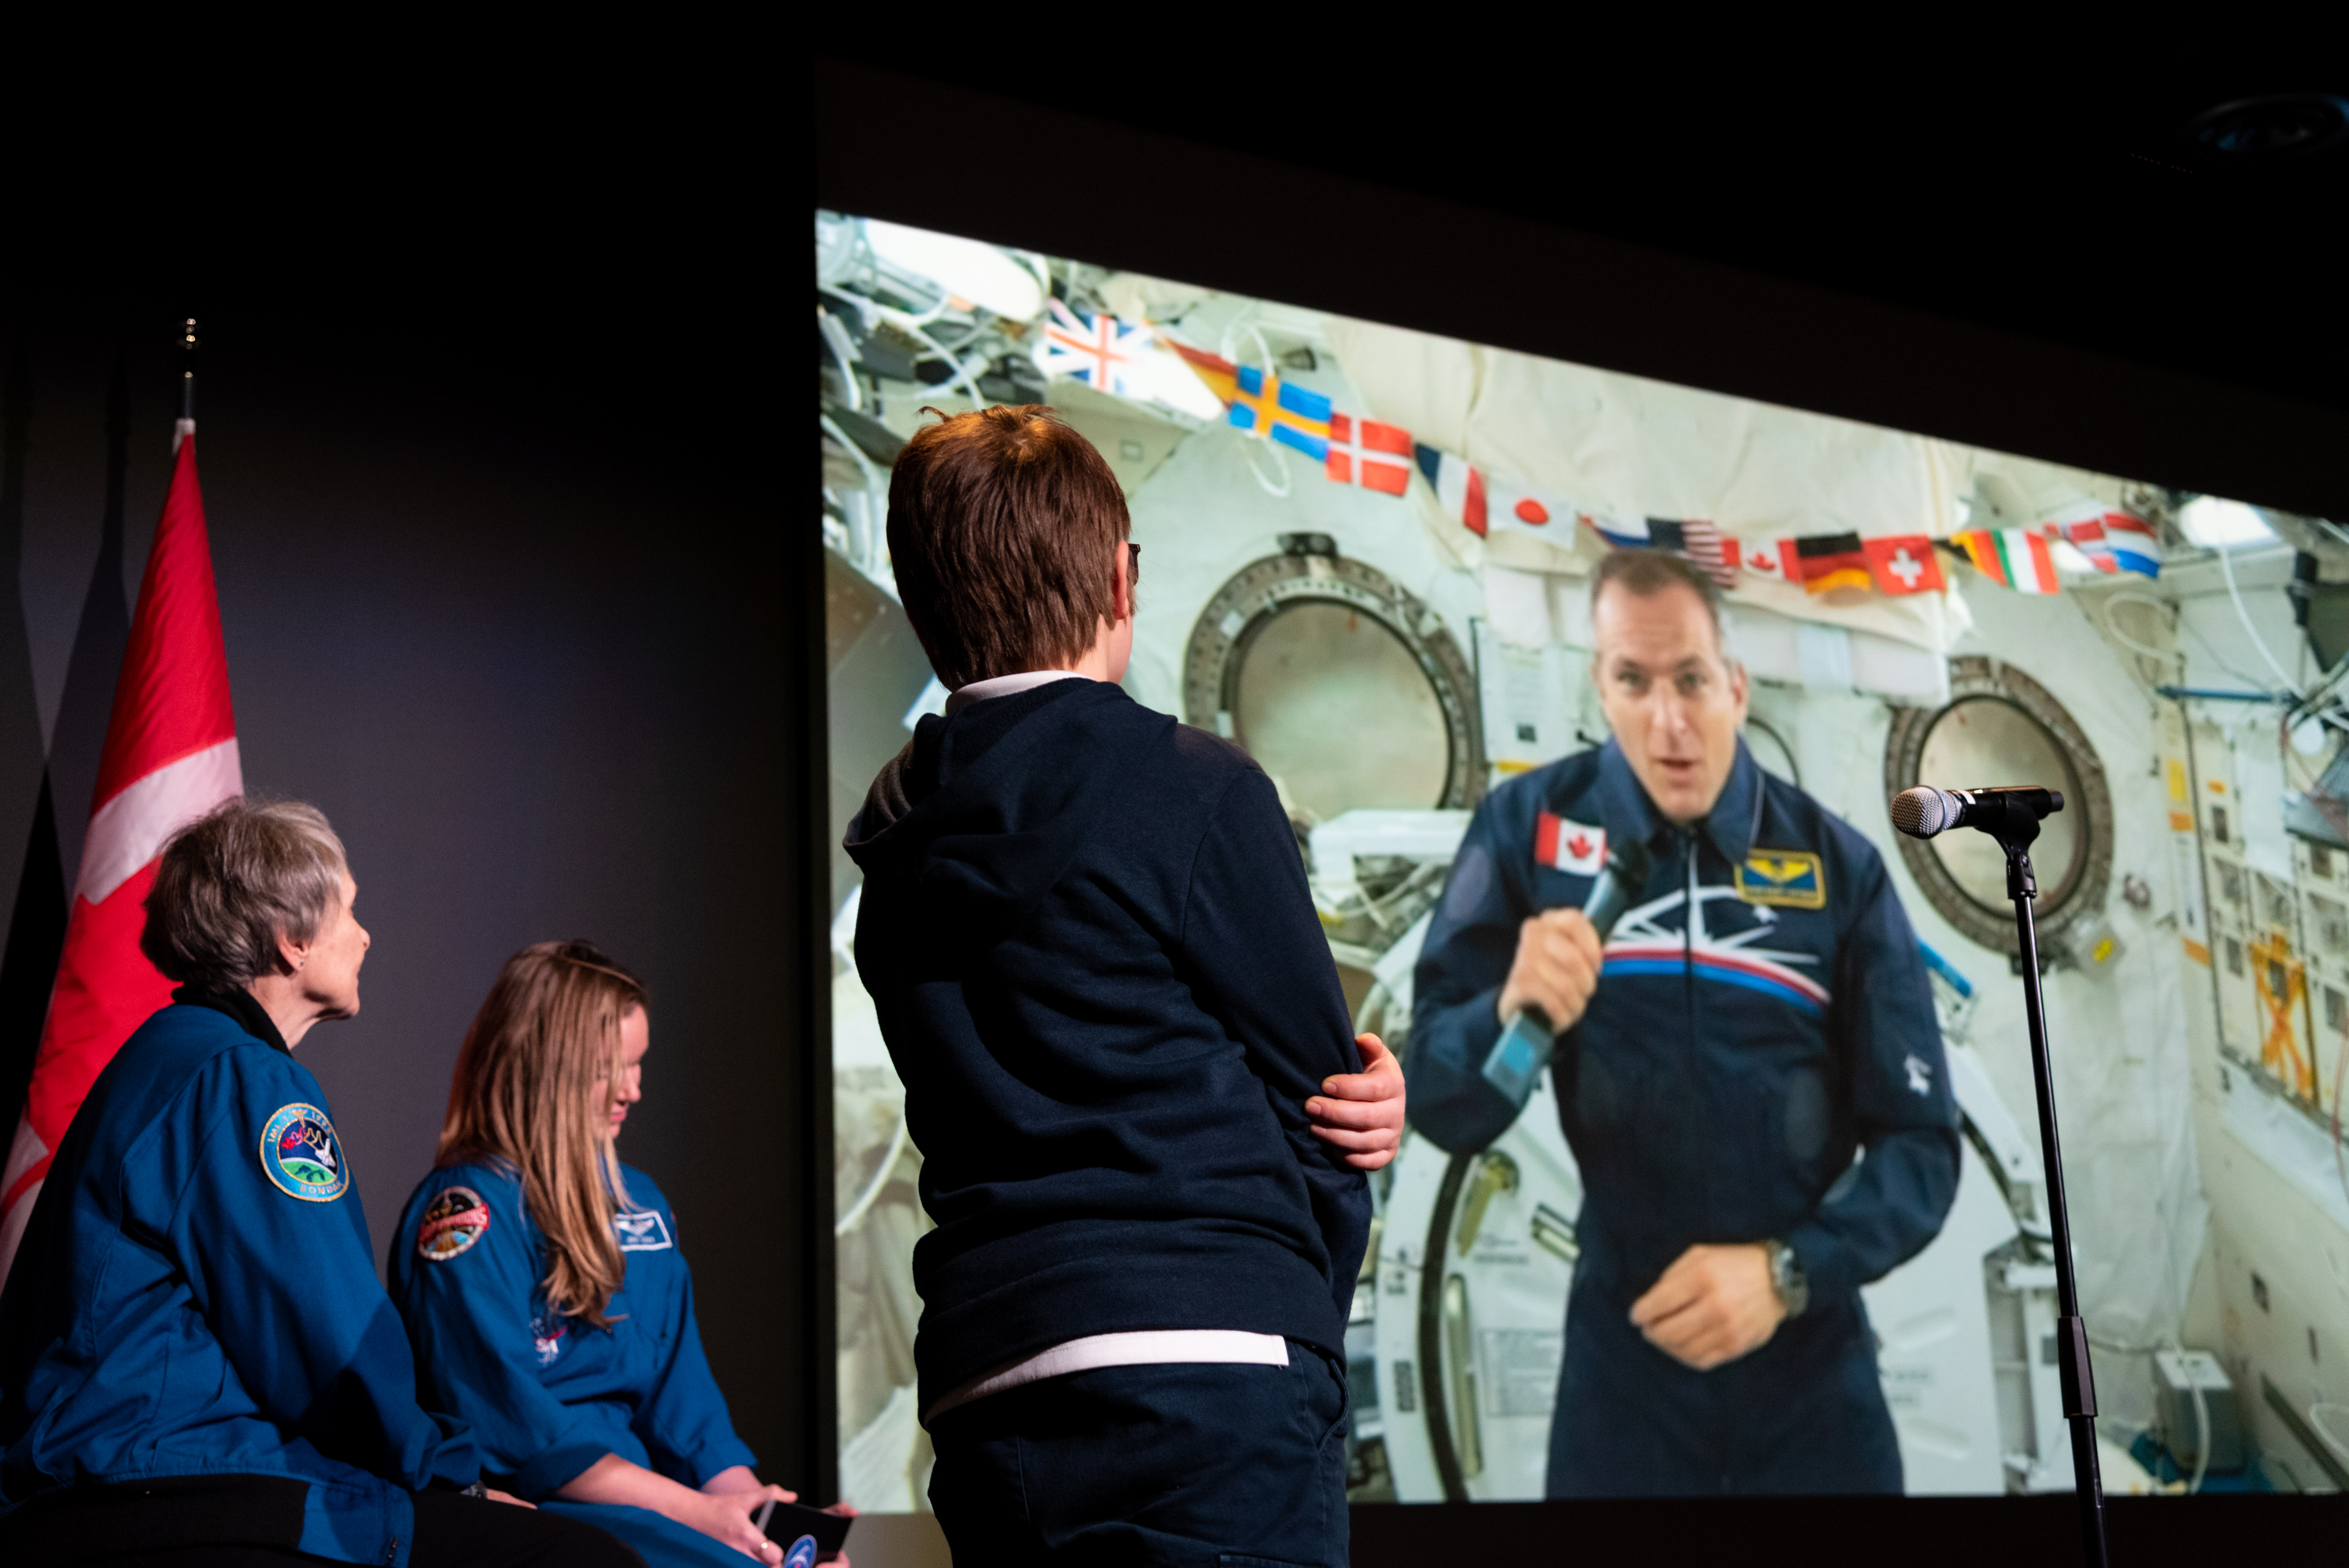 David Saint-Jacques, appearing via video link from the International Space Station, answers a student's question about space while Roberta Bondar, far left, and Jenni Sidey-Gibbons look on.